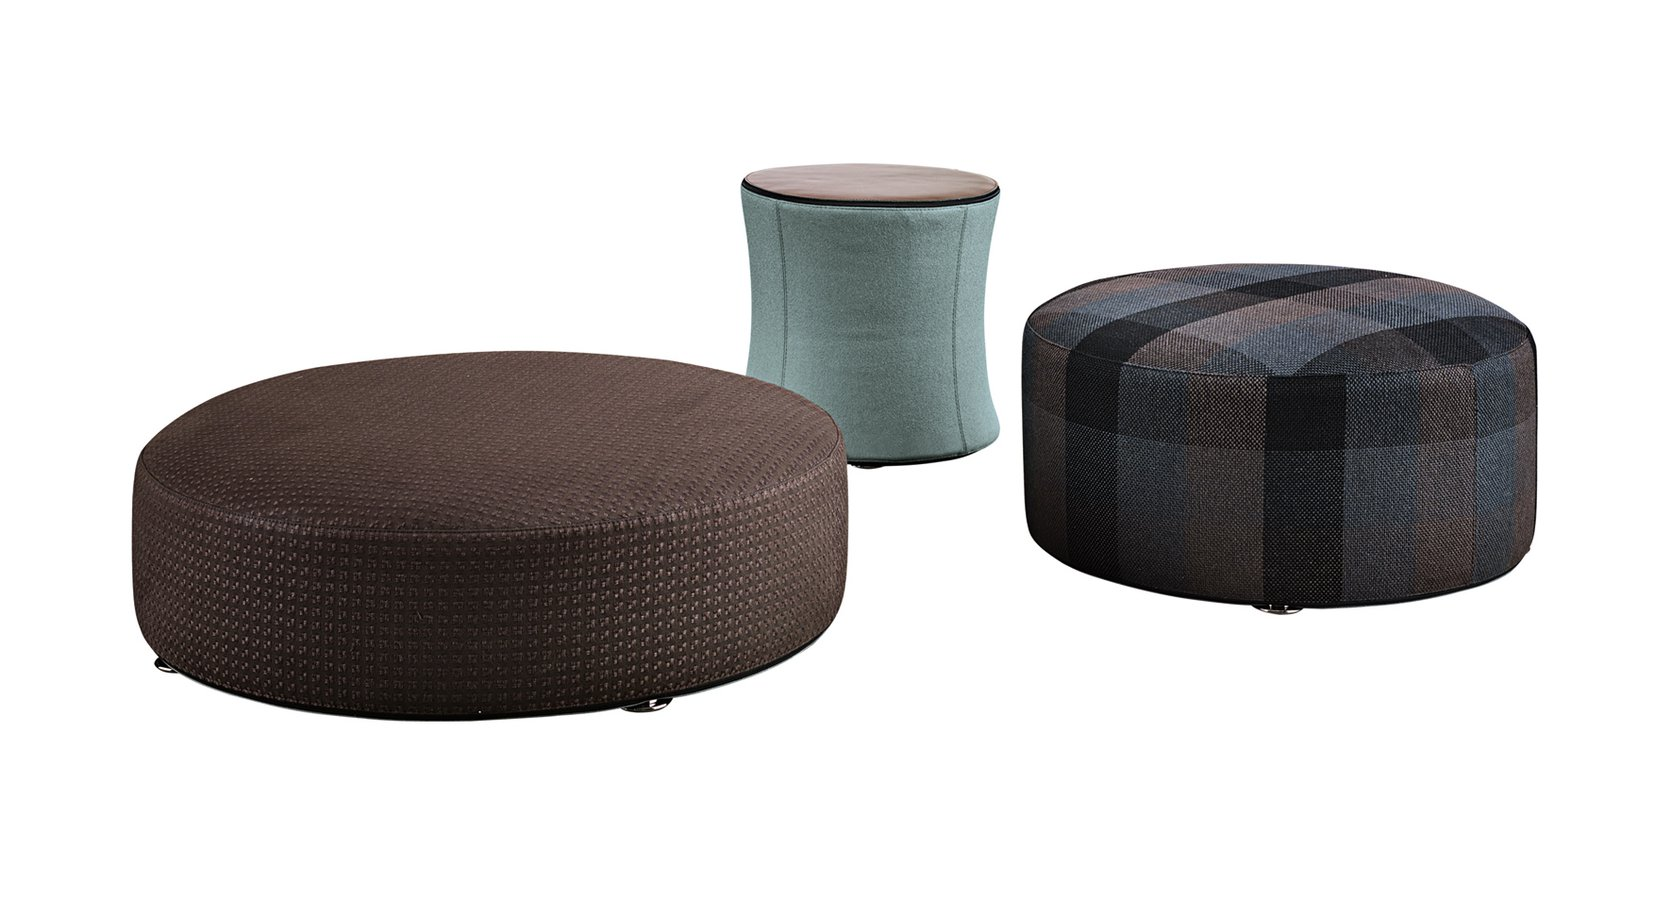 davis drum by minotti —  ecc - the davis family includes several poufs both round and square availablein different sizes the davis 'drum' in the particular hourglass shape with